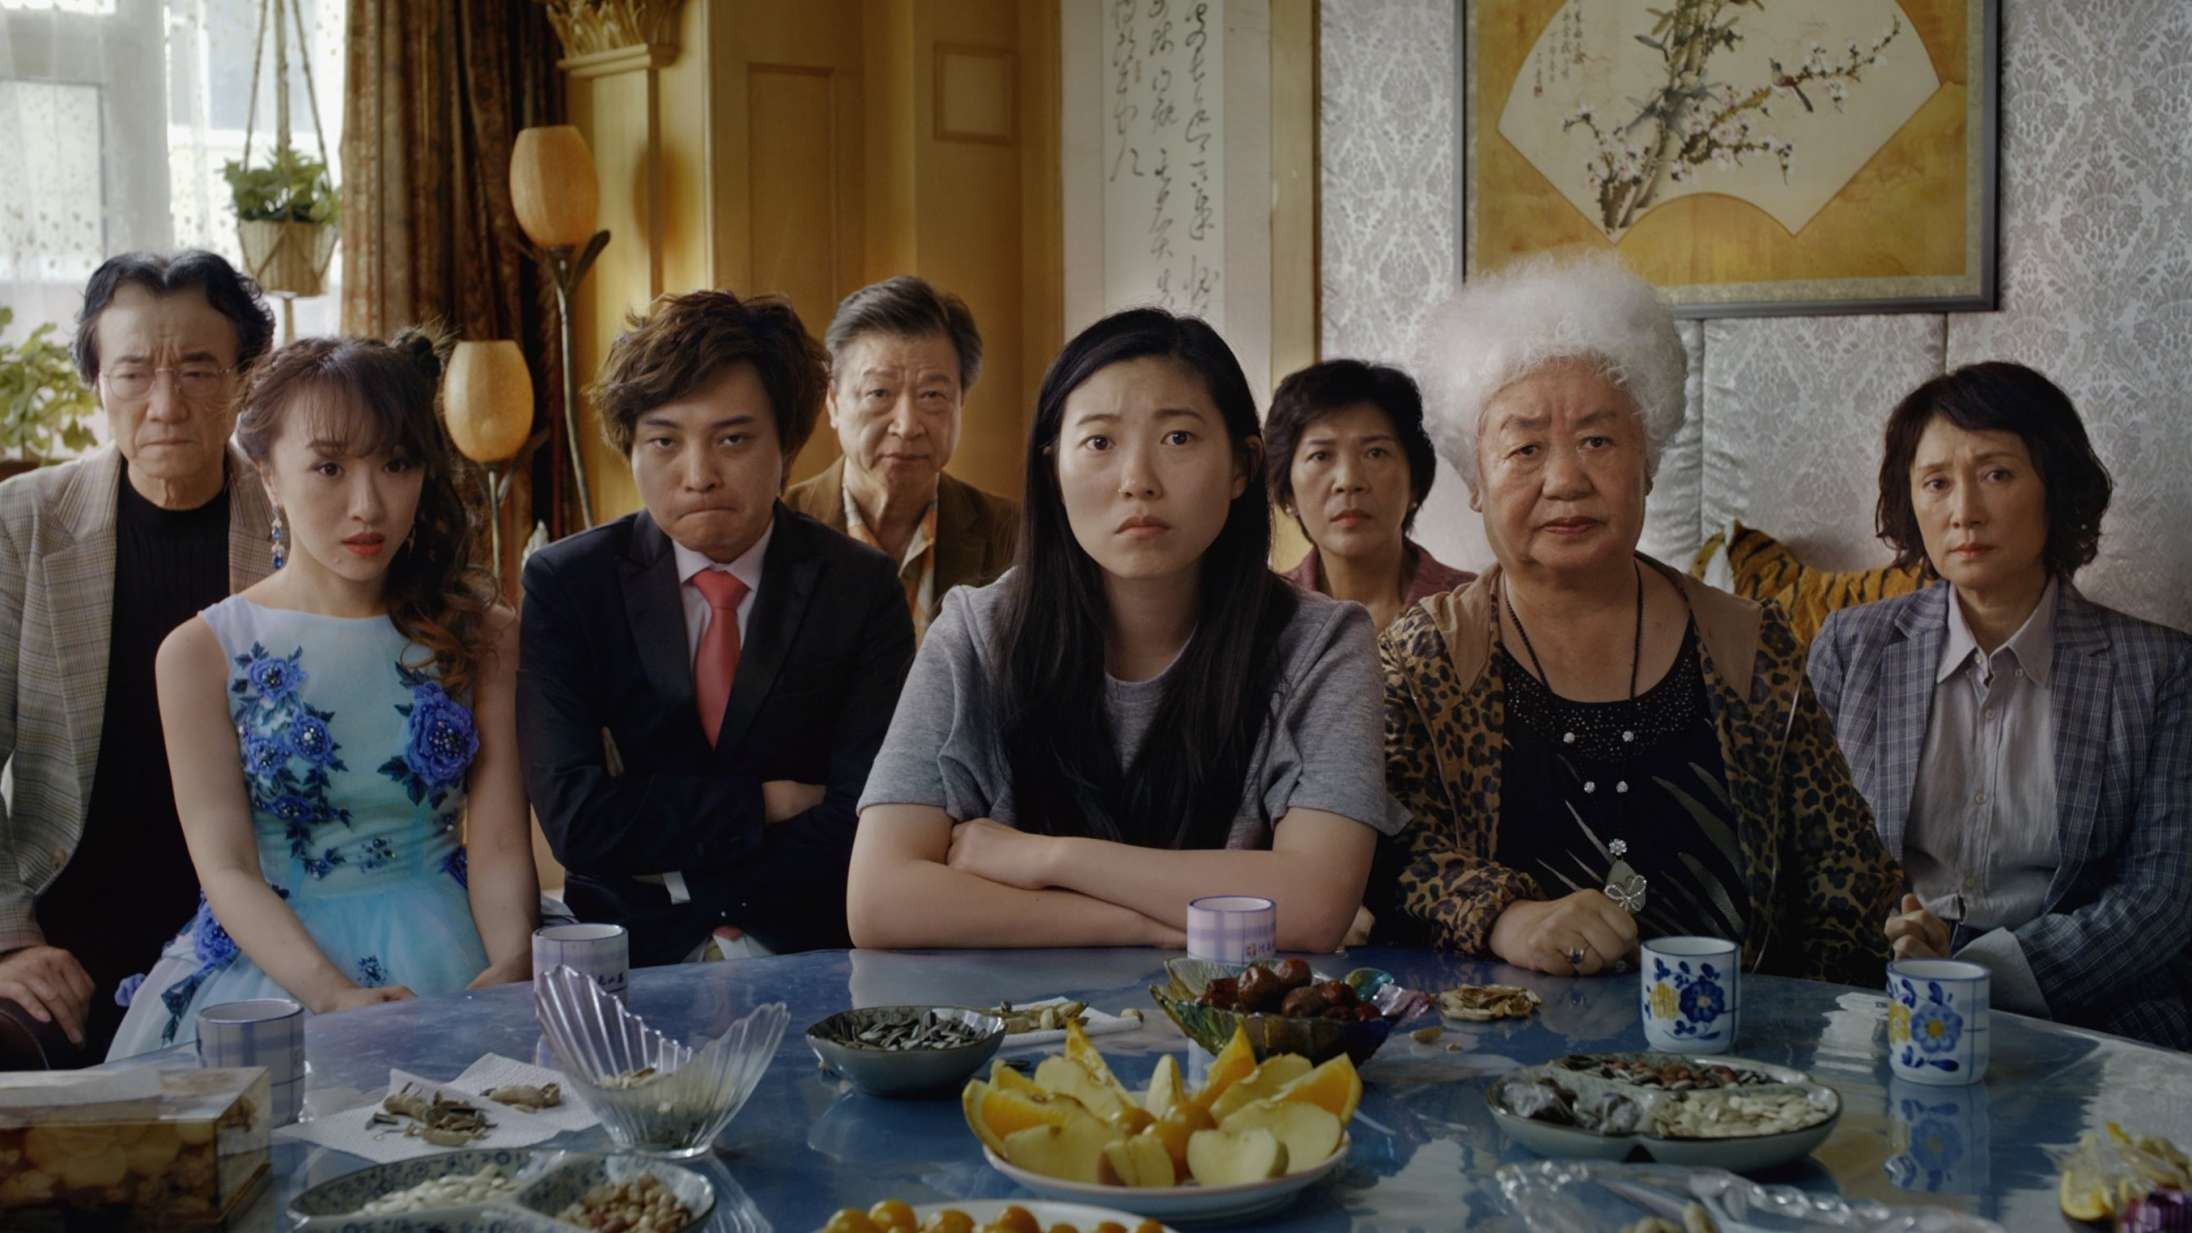 Kom til Soundvenue Forpremiere på den kritikerroste dramedy 'The Farewell'